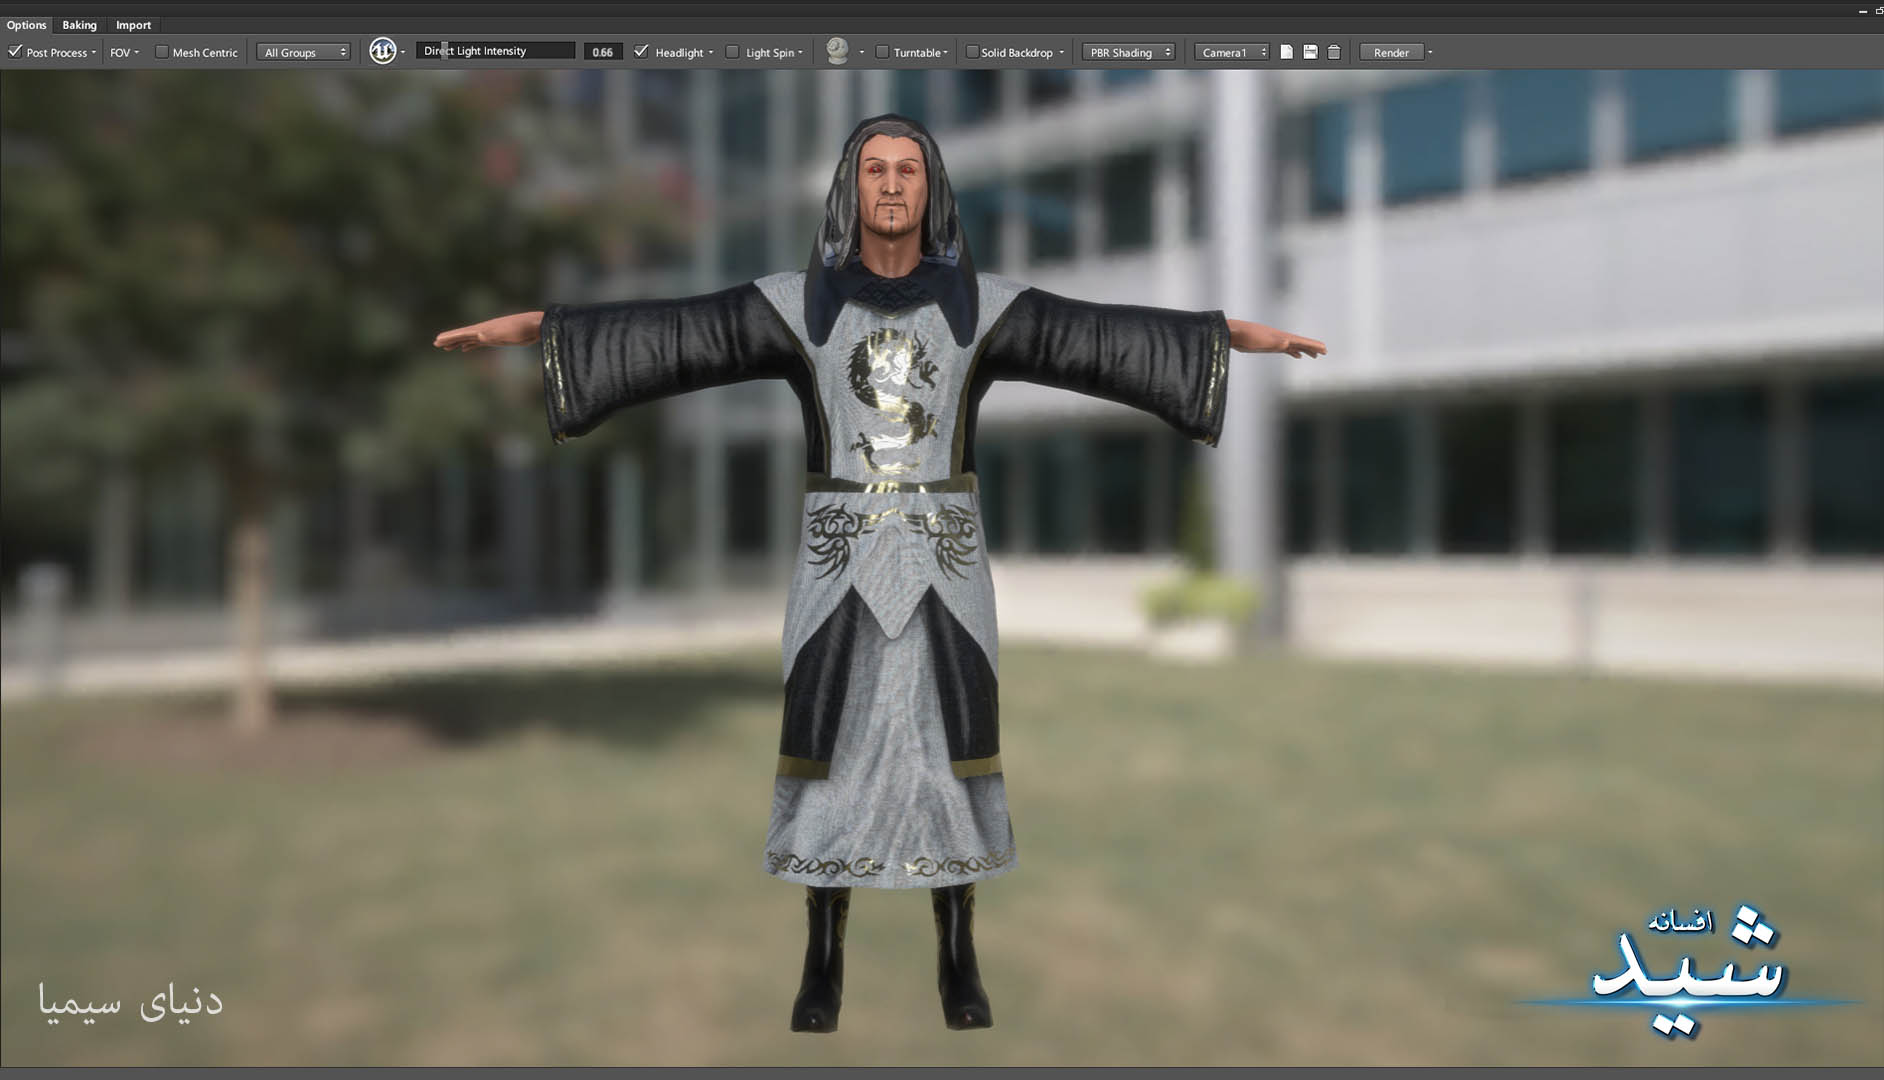 Legend of the light_Witcher Character Texturing_Hadi Beheshti CG Artist Game Designer-11